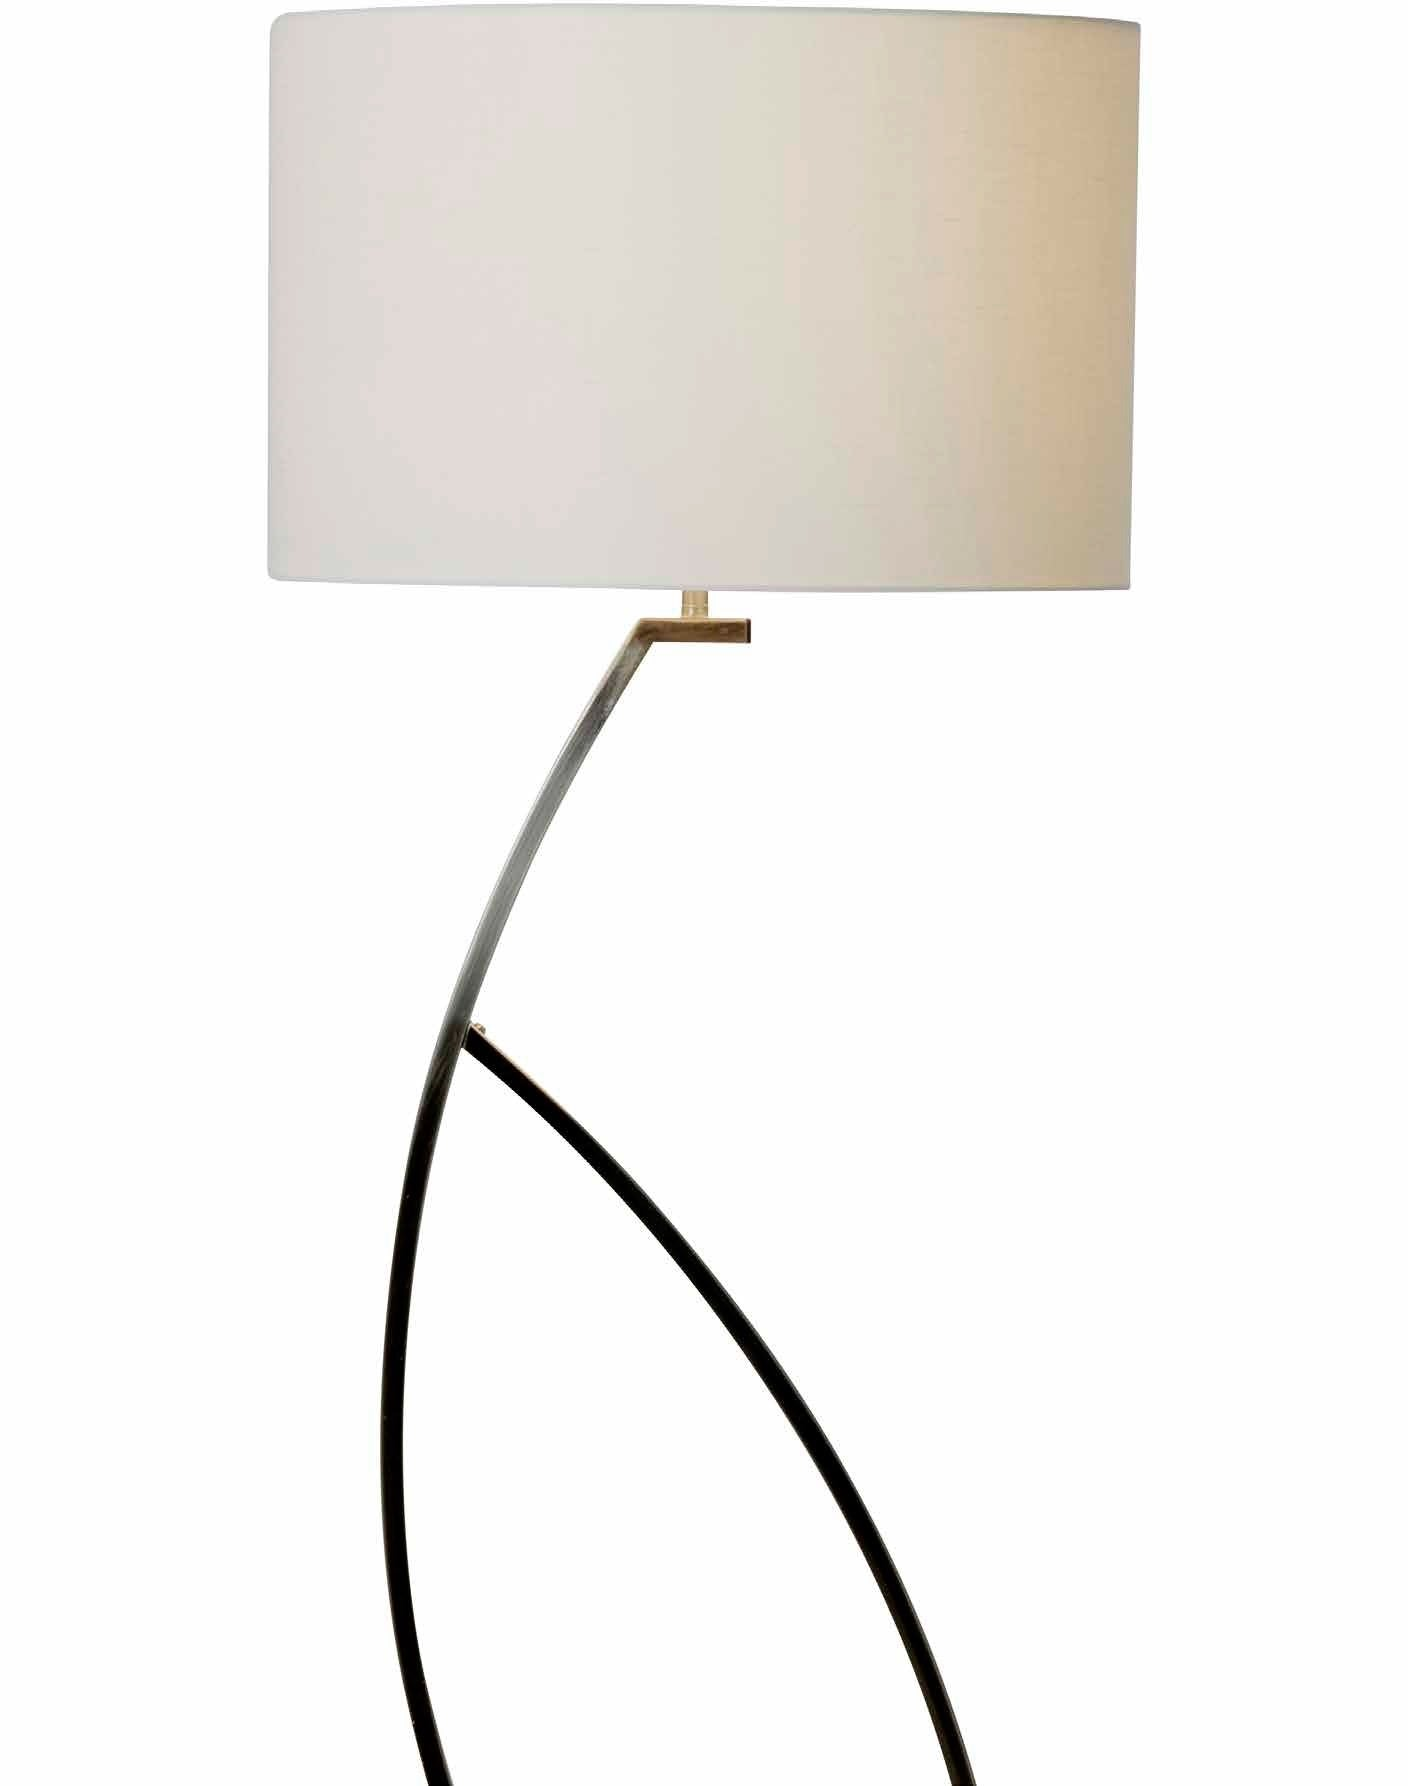 noble floor lamp in brushed chrome with a round shade available in